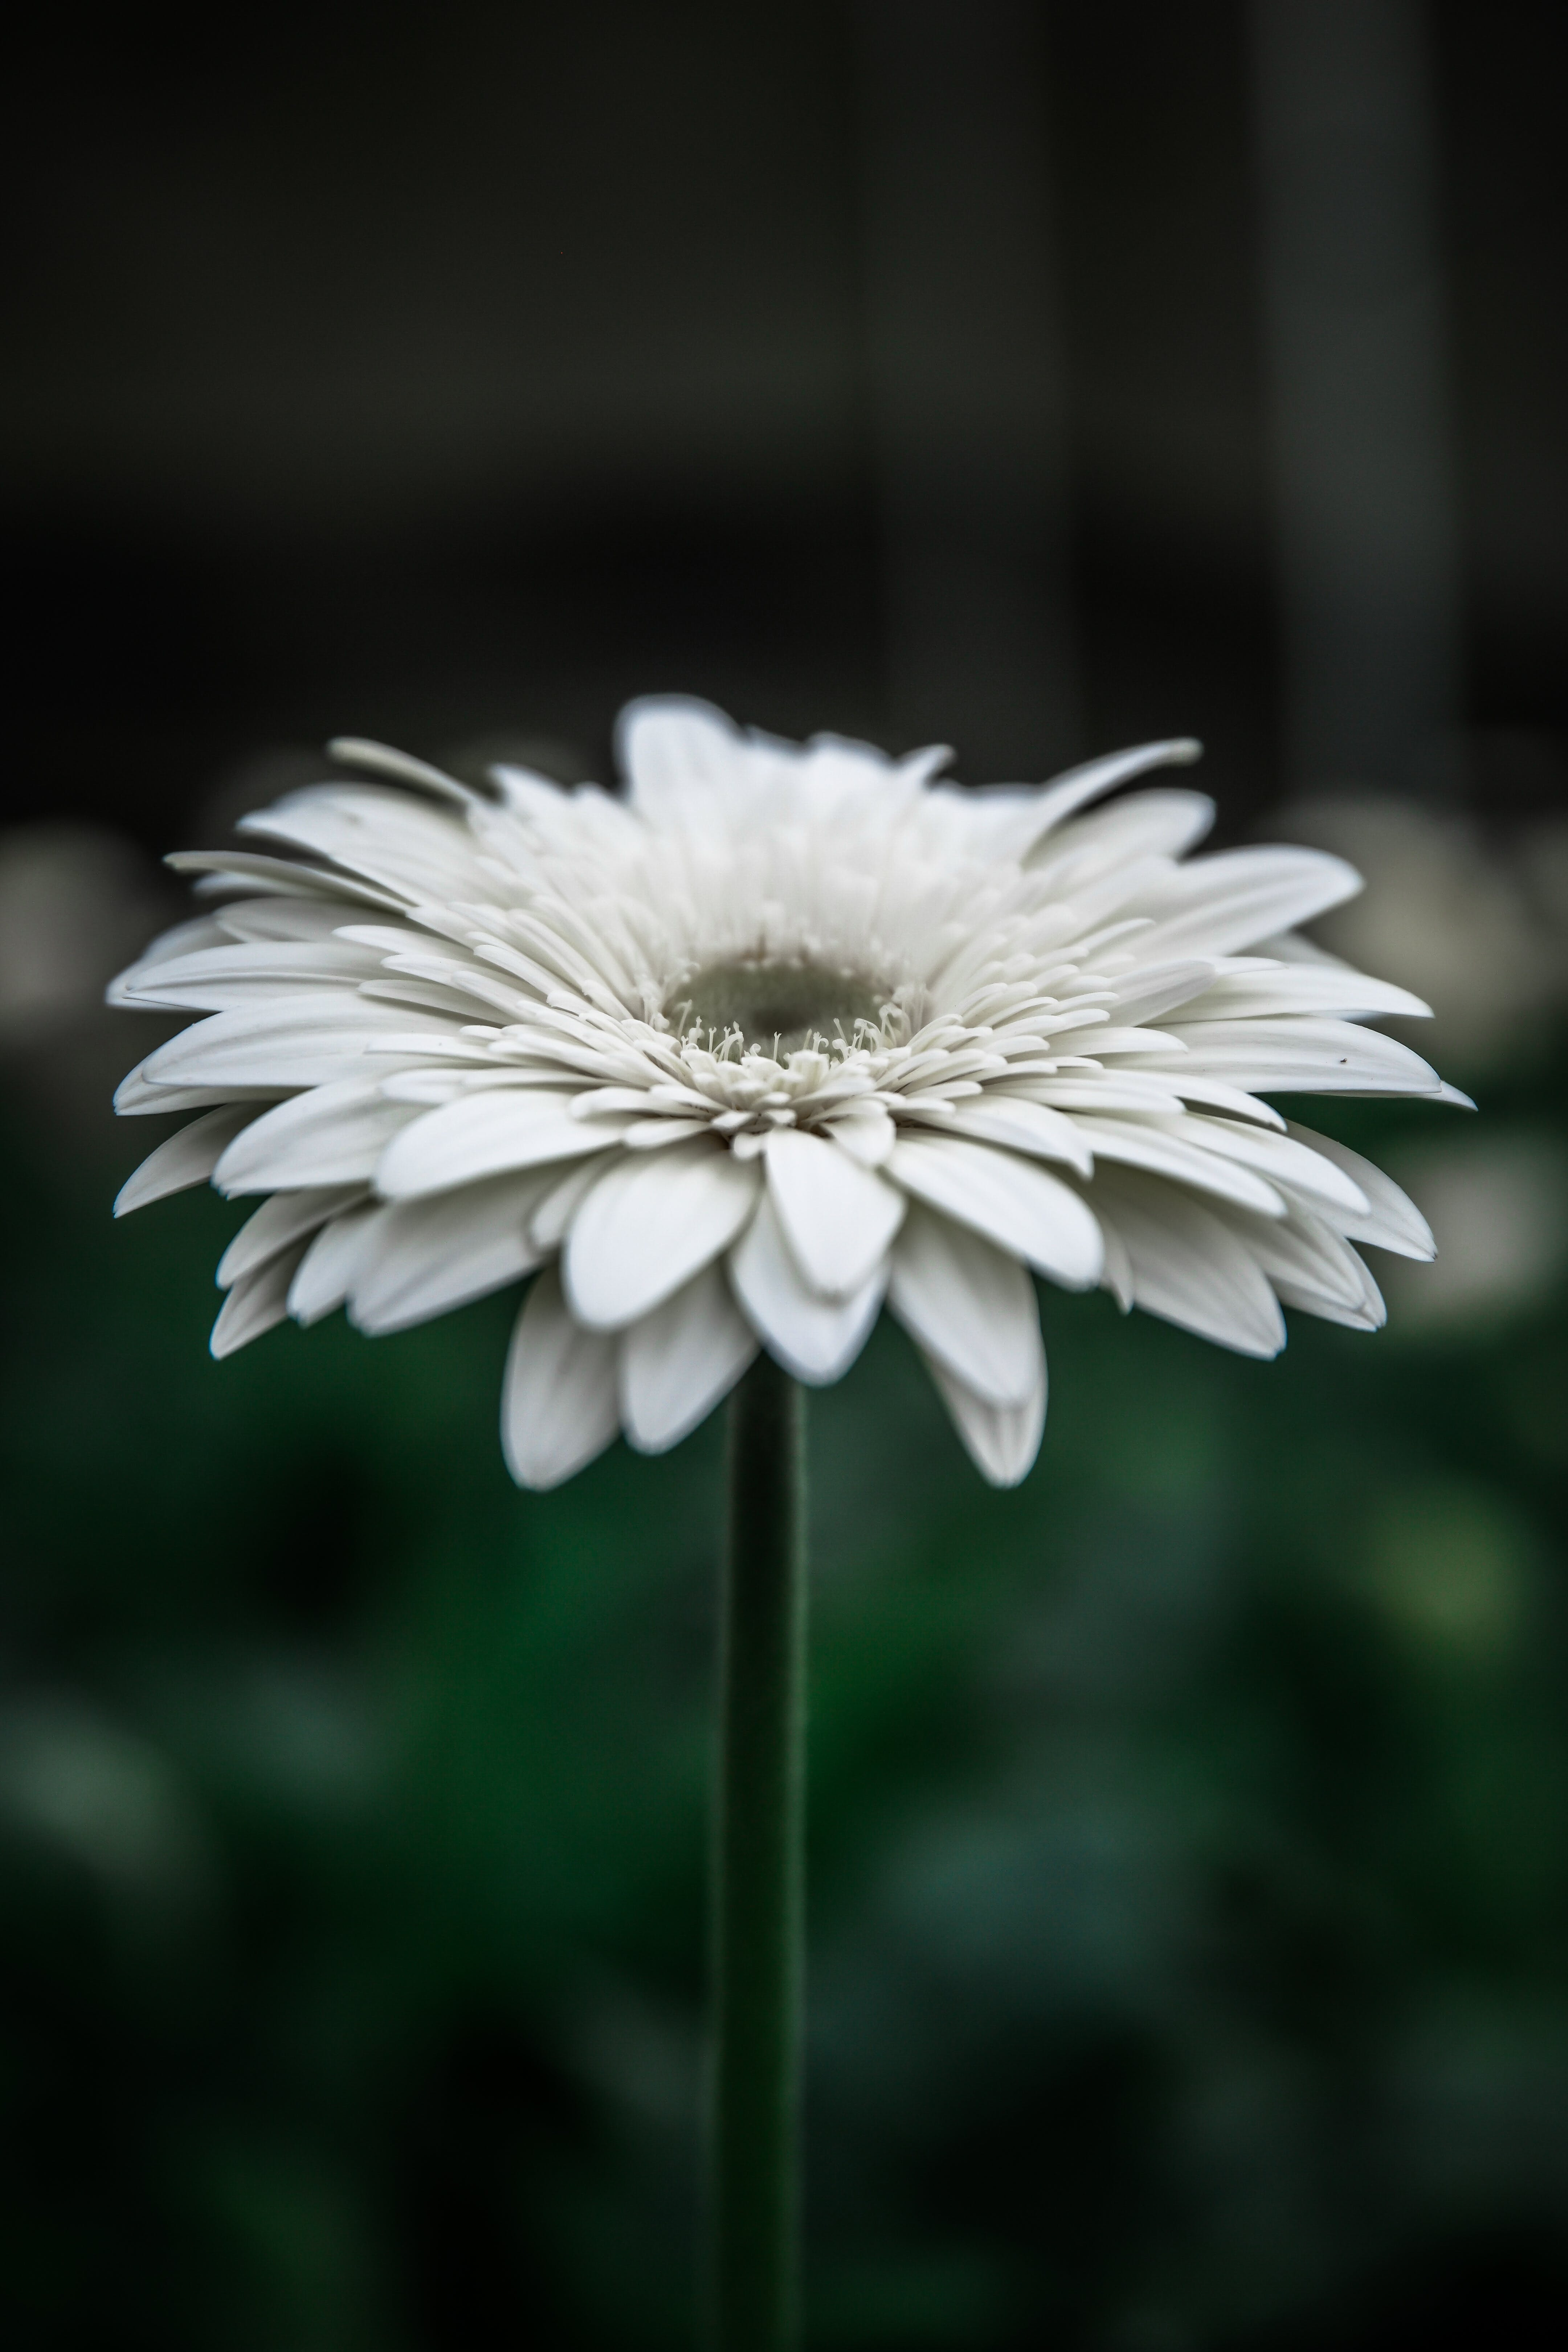 White Gerbera Daisy in Bloom Selective Focus Photography